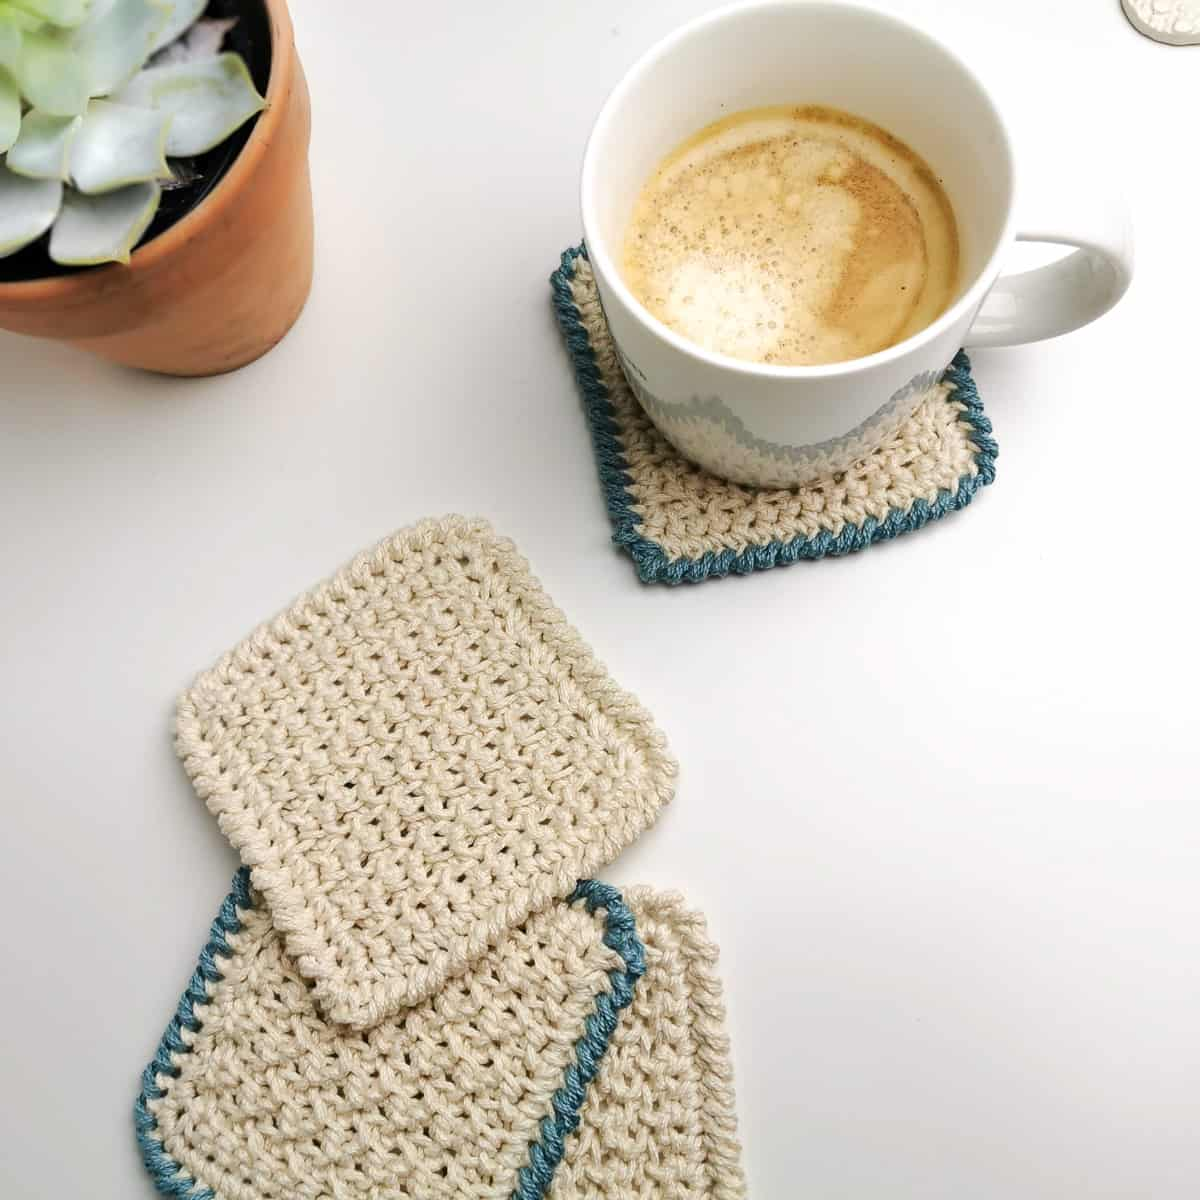 Nordic Textured Coasters by Joy of Motion Crochet